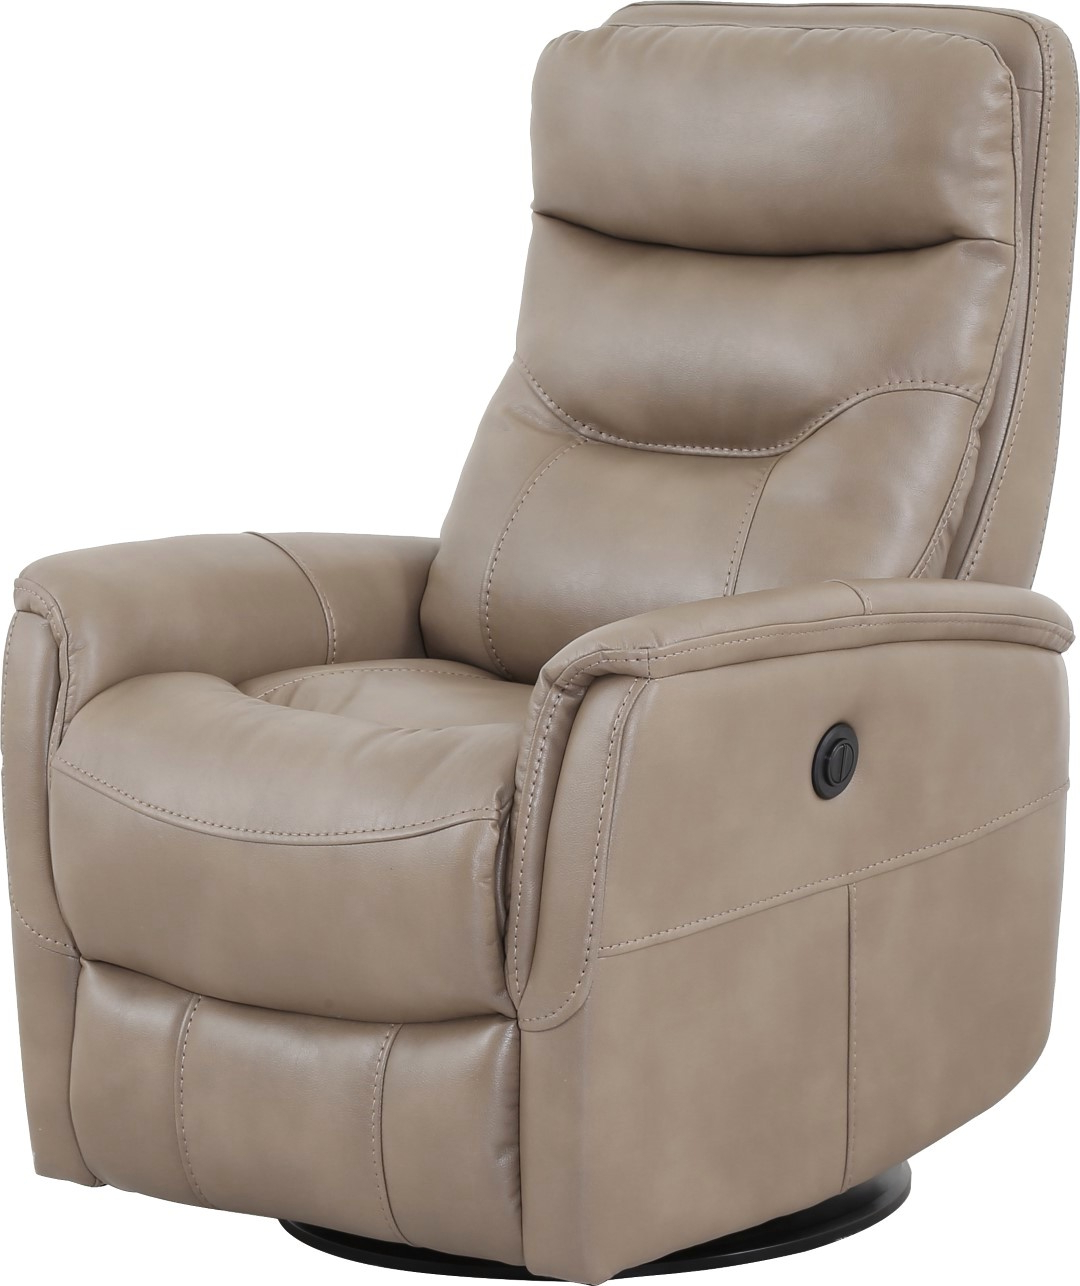 Hercules Oyster Swivel Glider Recliners For Well Known Gemini Linen Swivel Glider Power Recliner With Articulating Headrest (View 9 of 20)